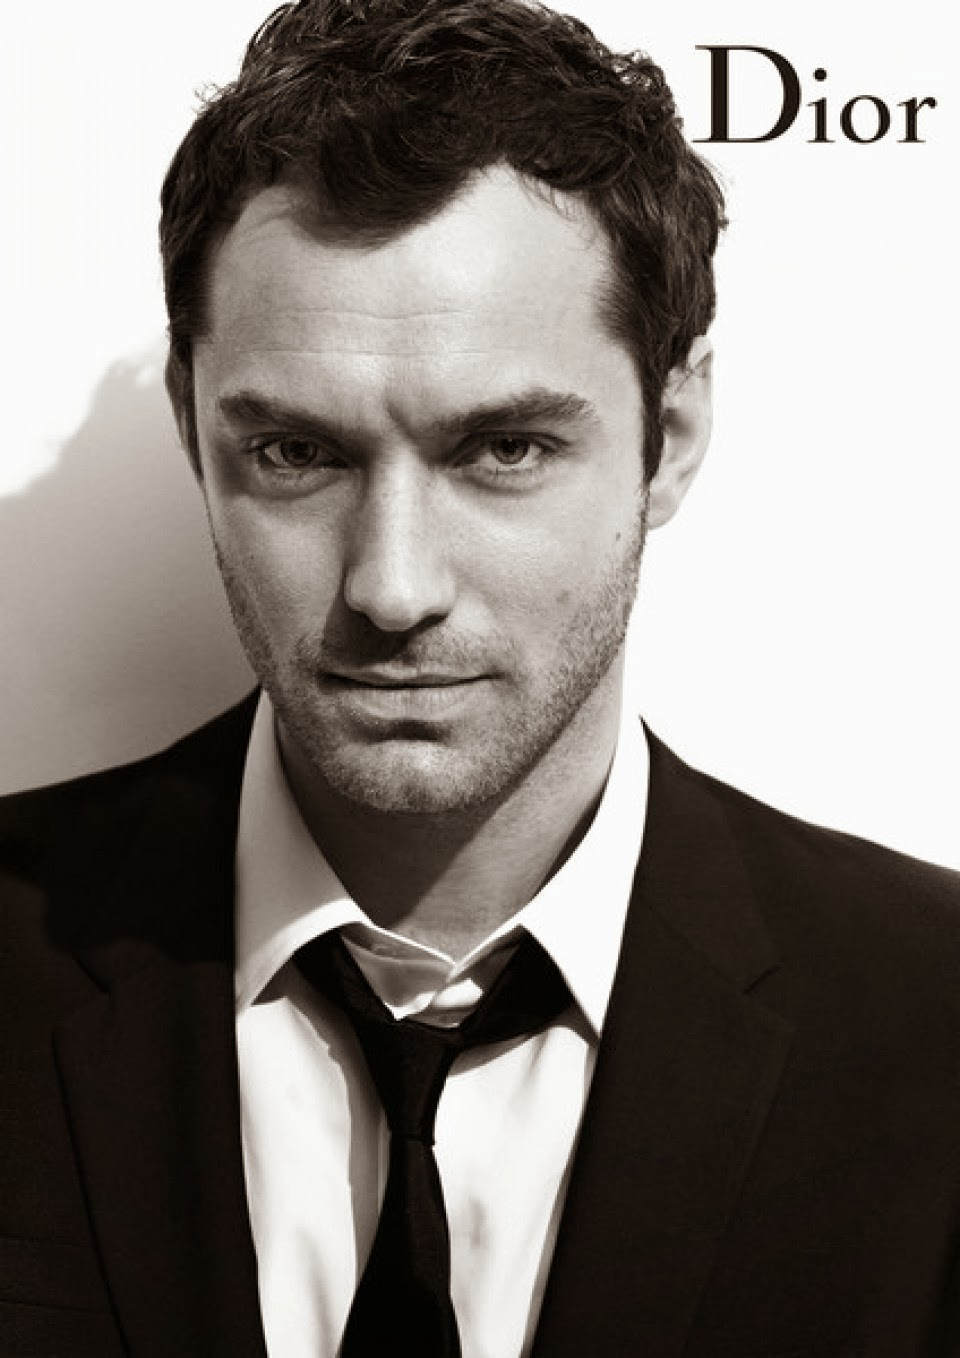 Celebrities, Movies and Games: Jude Law for Dior Homme ... Jude Law